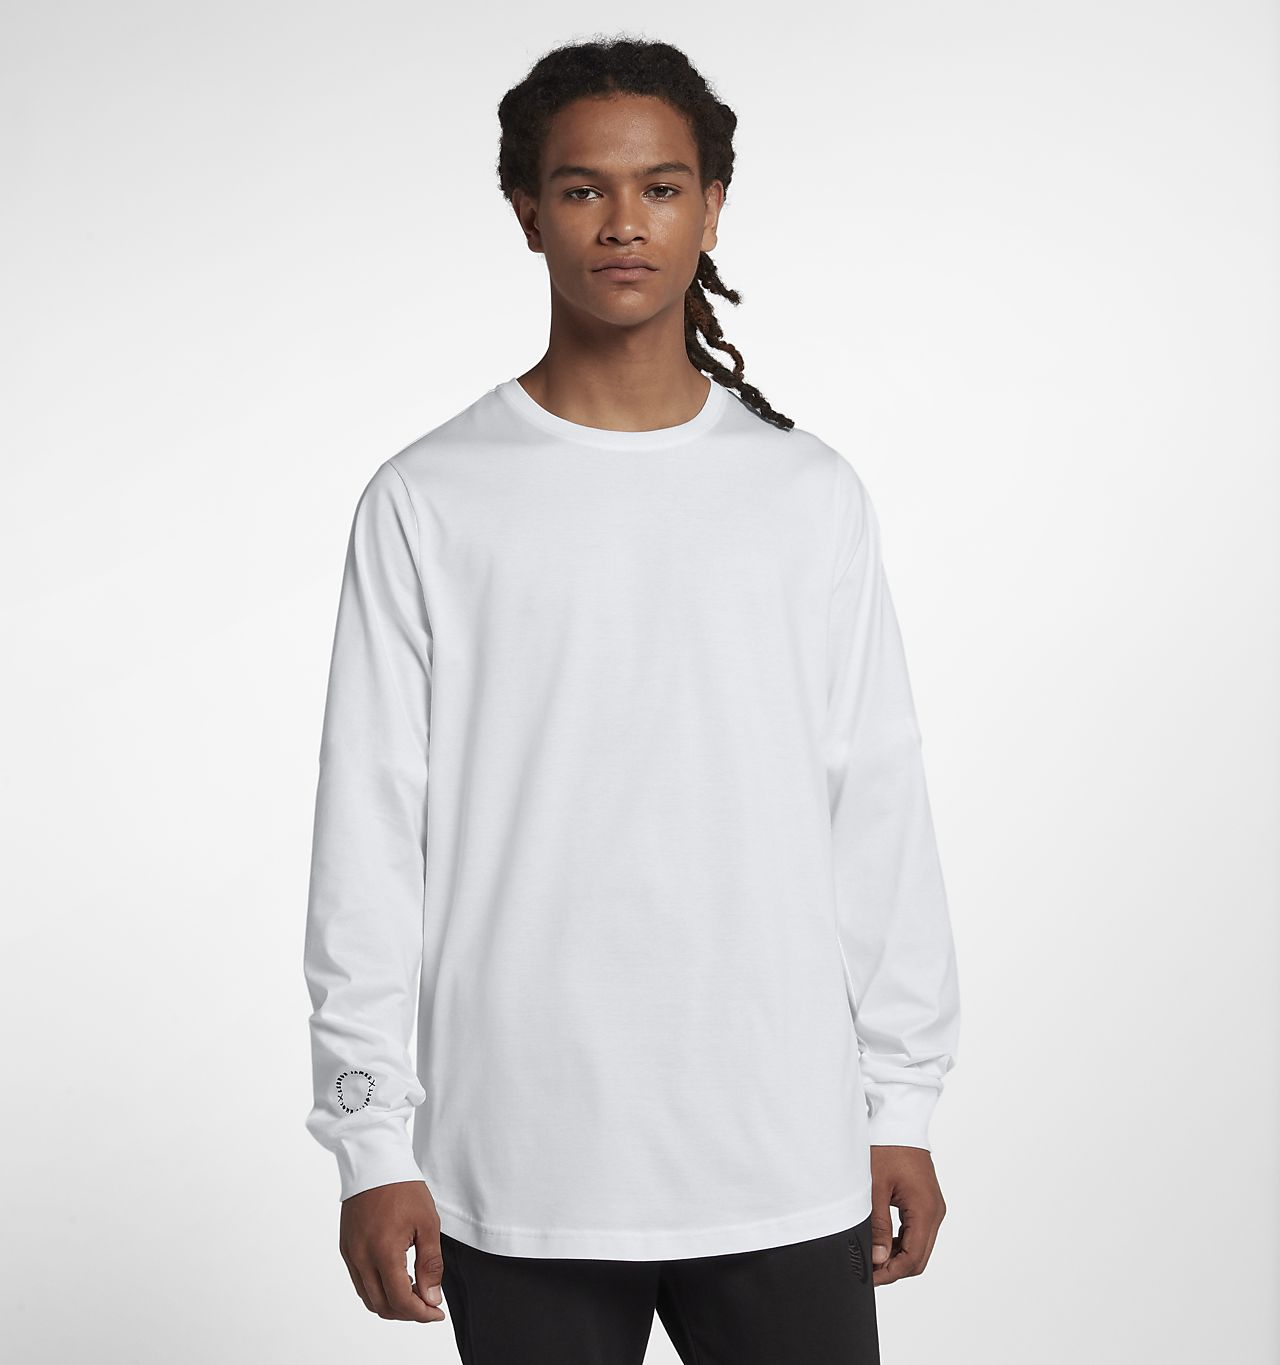 6acd3c28 LeBron James x John Elliott Men's Long-Sleeve T-Shirt. Nike.com IN